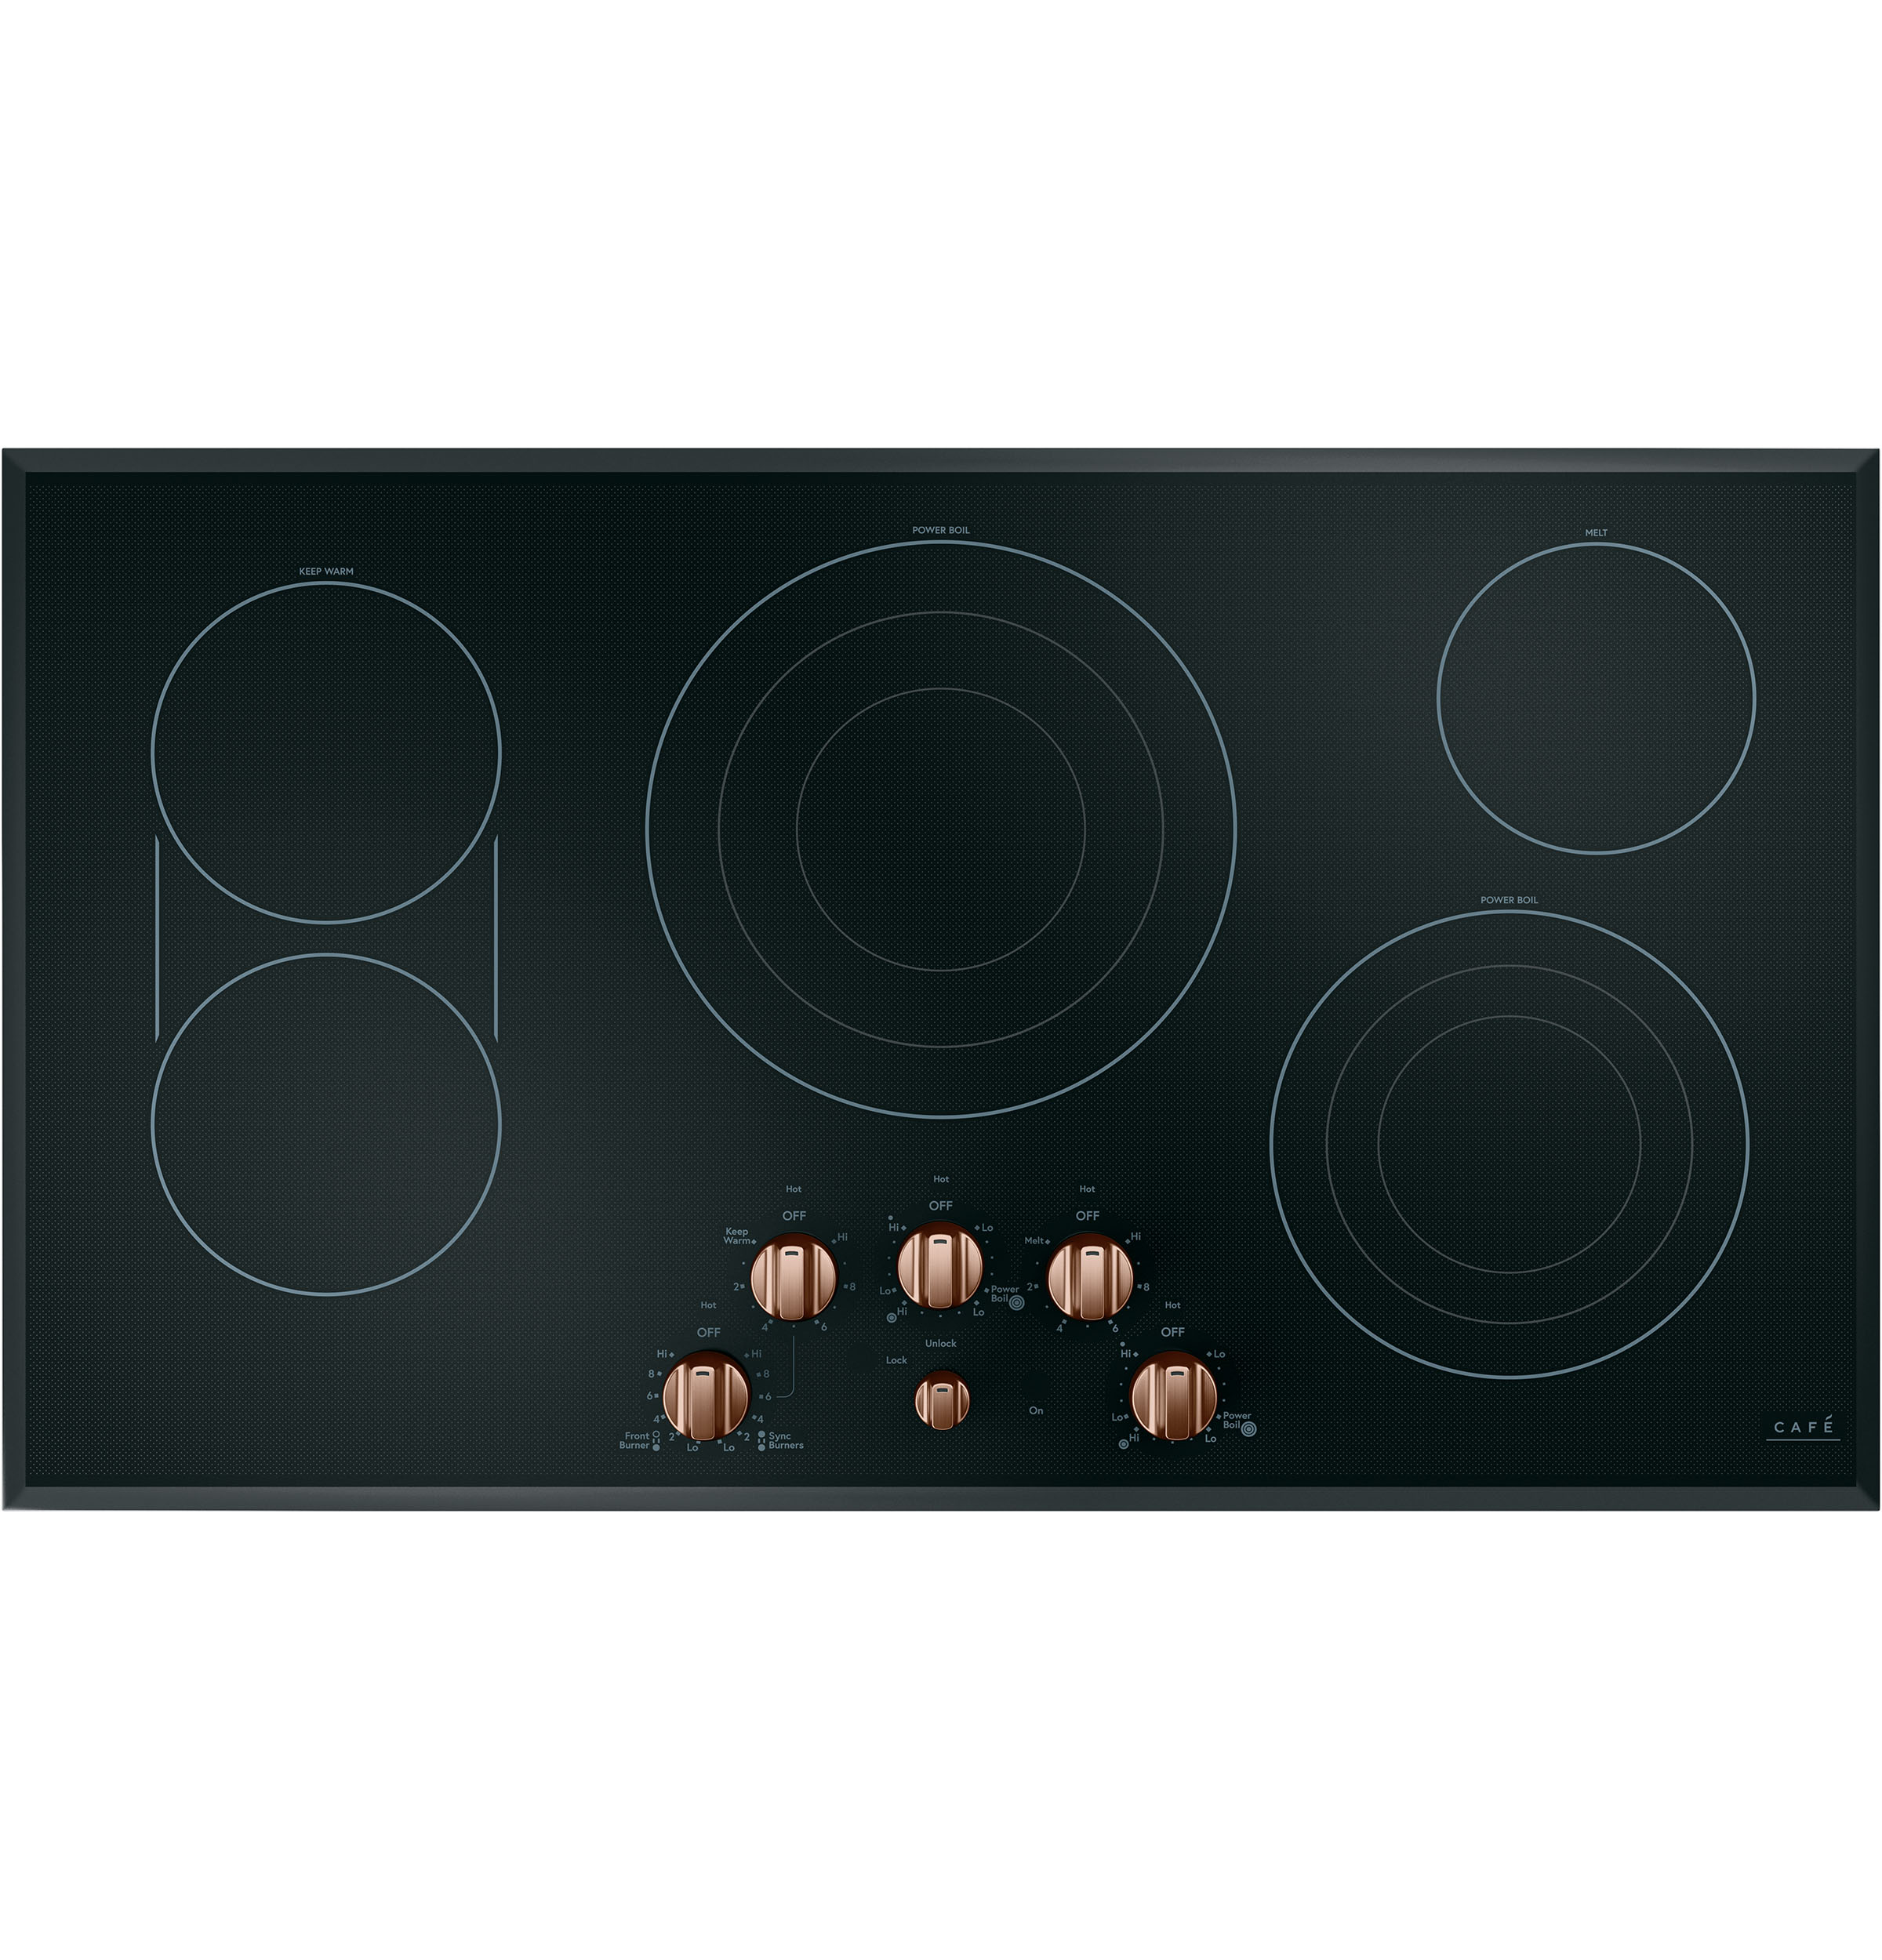 Model: CXCE1HKPMCU | Cafe 5 Electric Cooktop Knobs - Brushed Copper